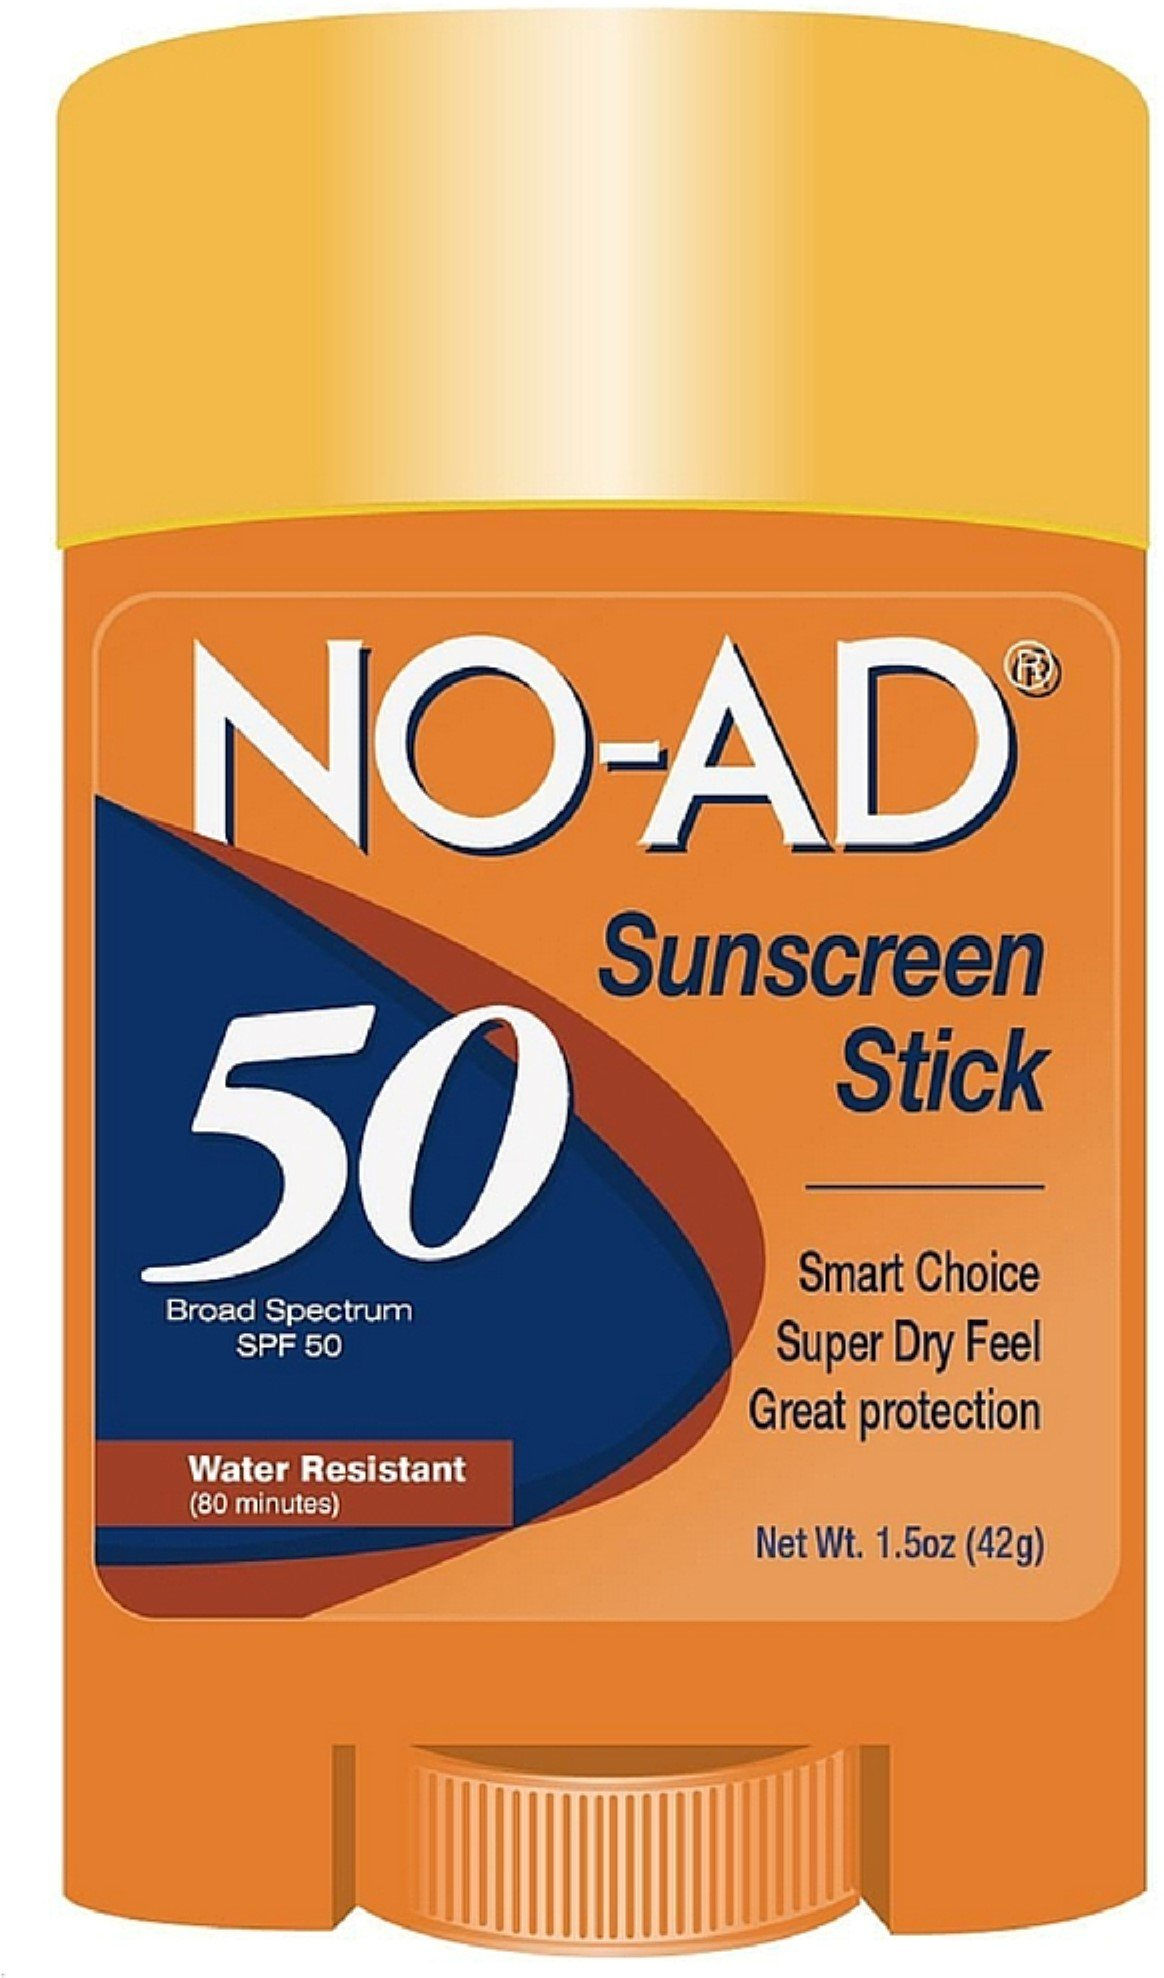 NO-AD Water Resistant Sunscreen Stick SPF 50 1.50 oz (Pack of 8)